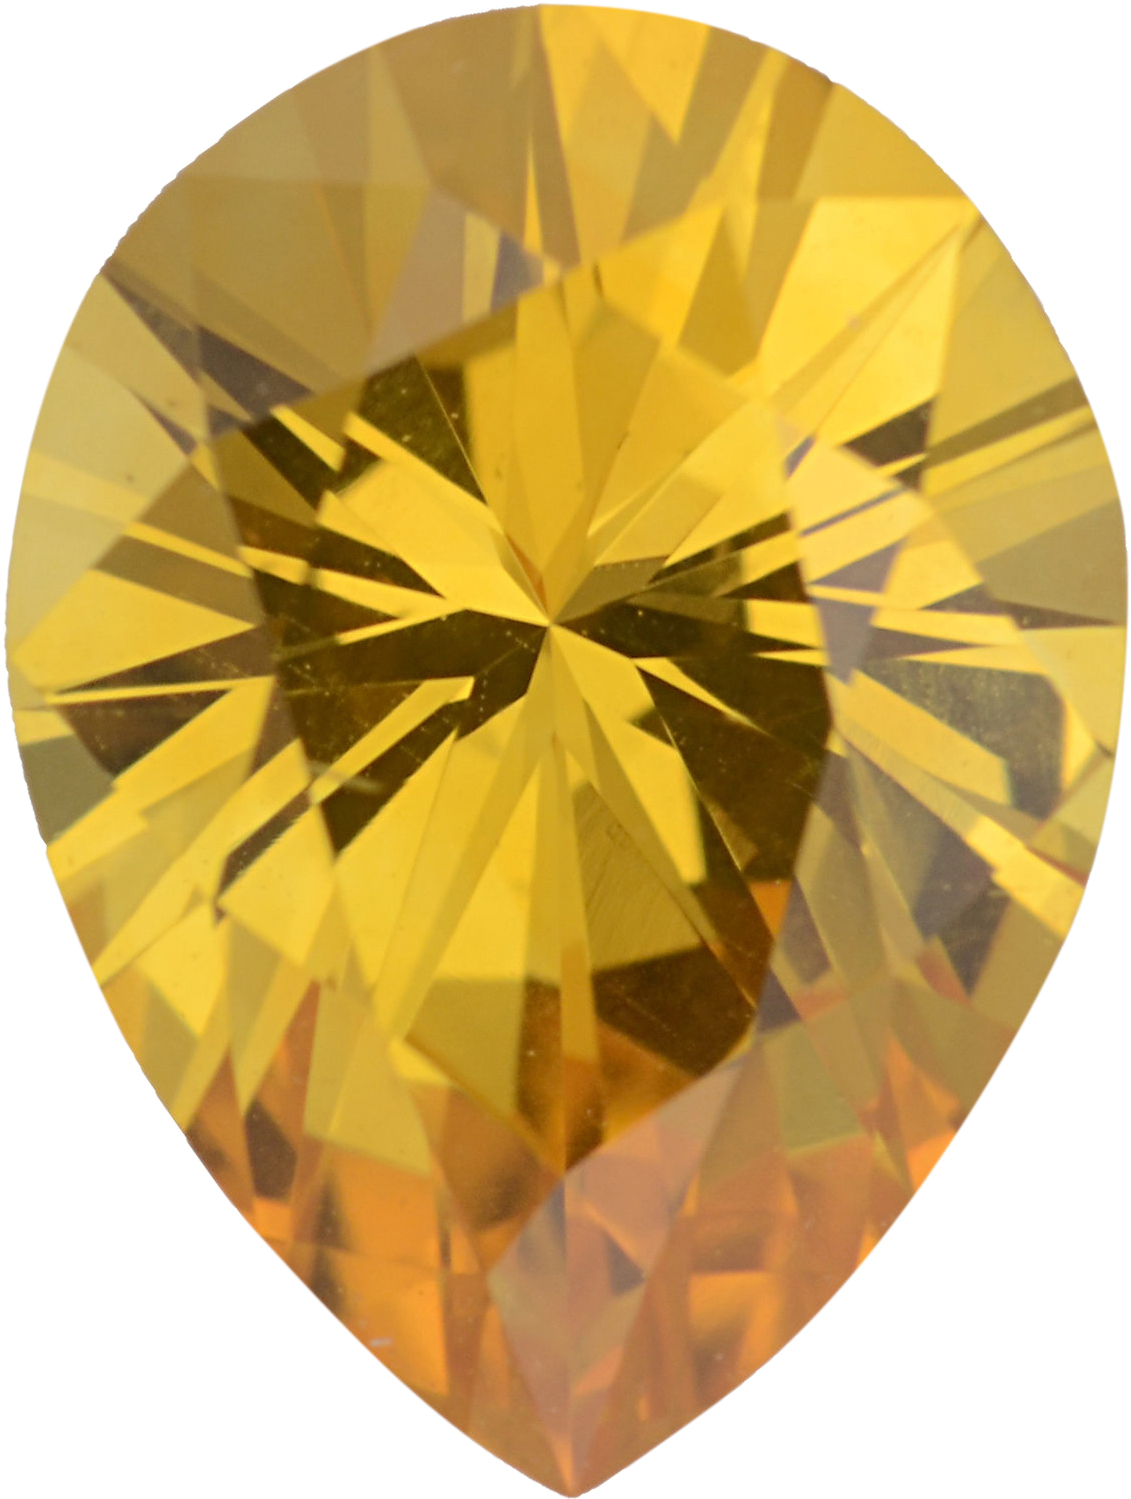 Attractive Sapphire Loose Gem in Pear Cut, Light Orangy Yellow, 8.01 x 6.02  mm, 1.15 Carats